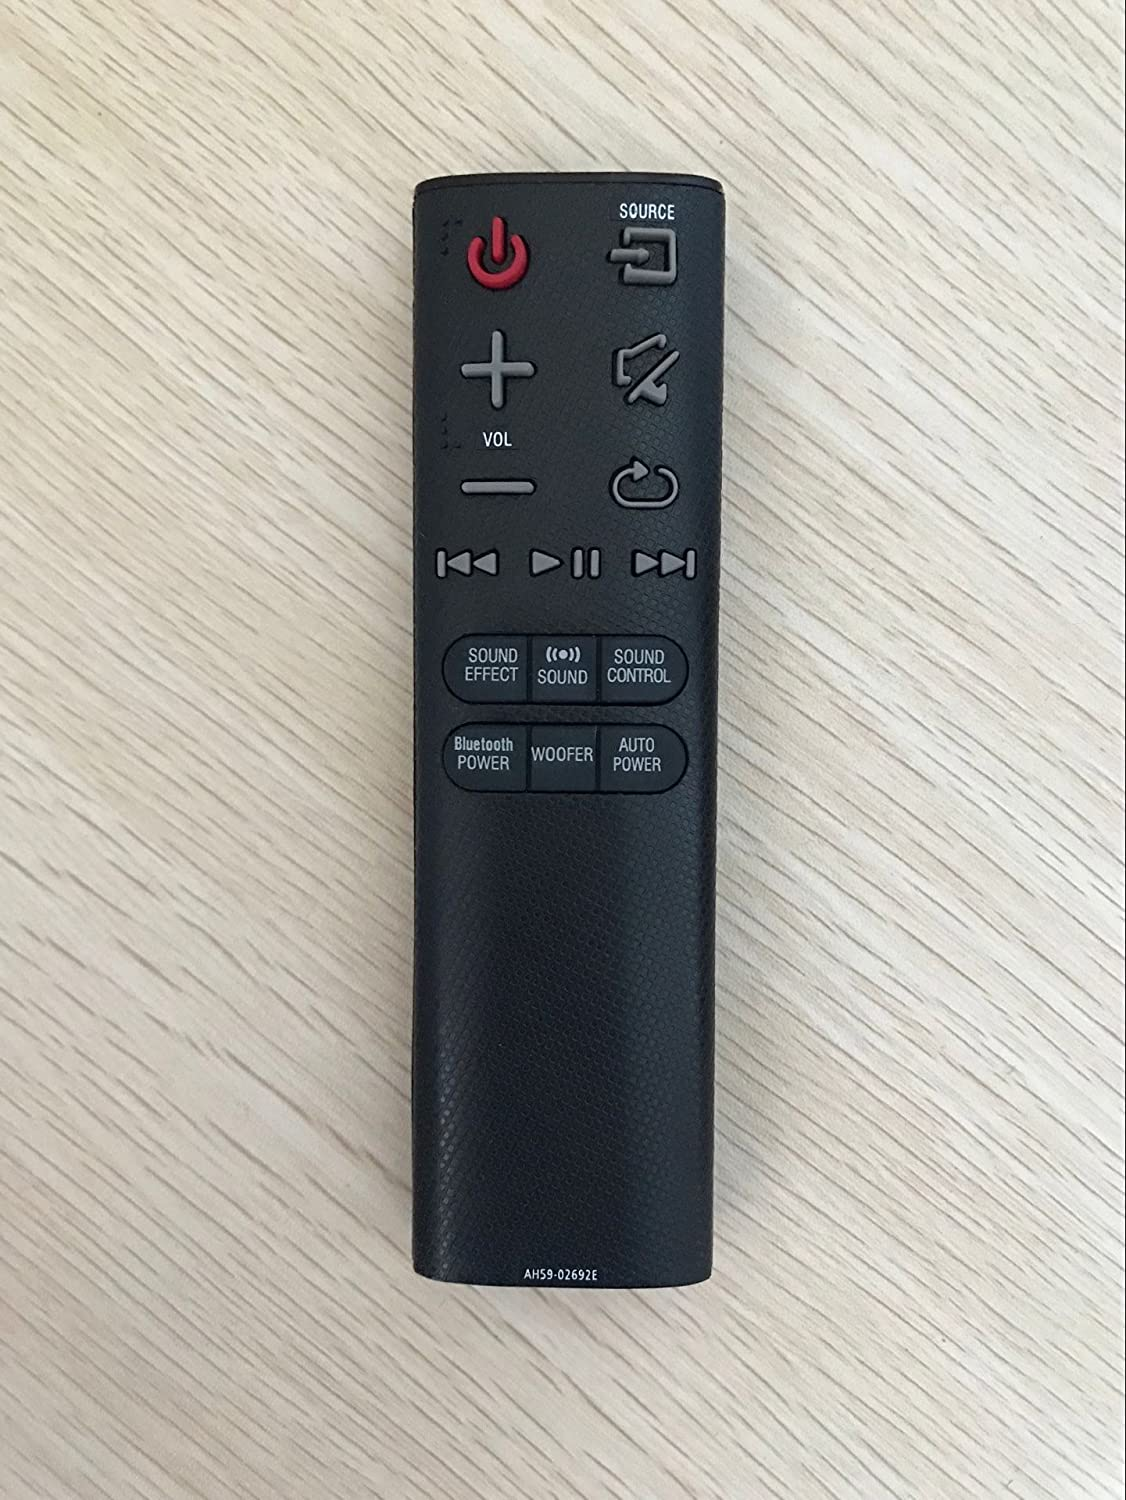 Replacement Remote Controller for Samsung HW-JM45/ZA HW-J450 HW-JM37 Audio Soundbar